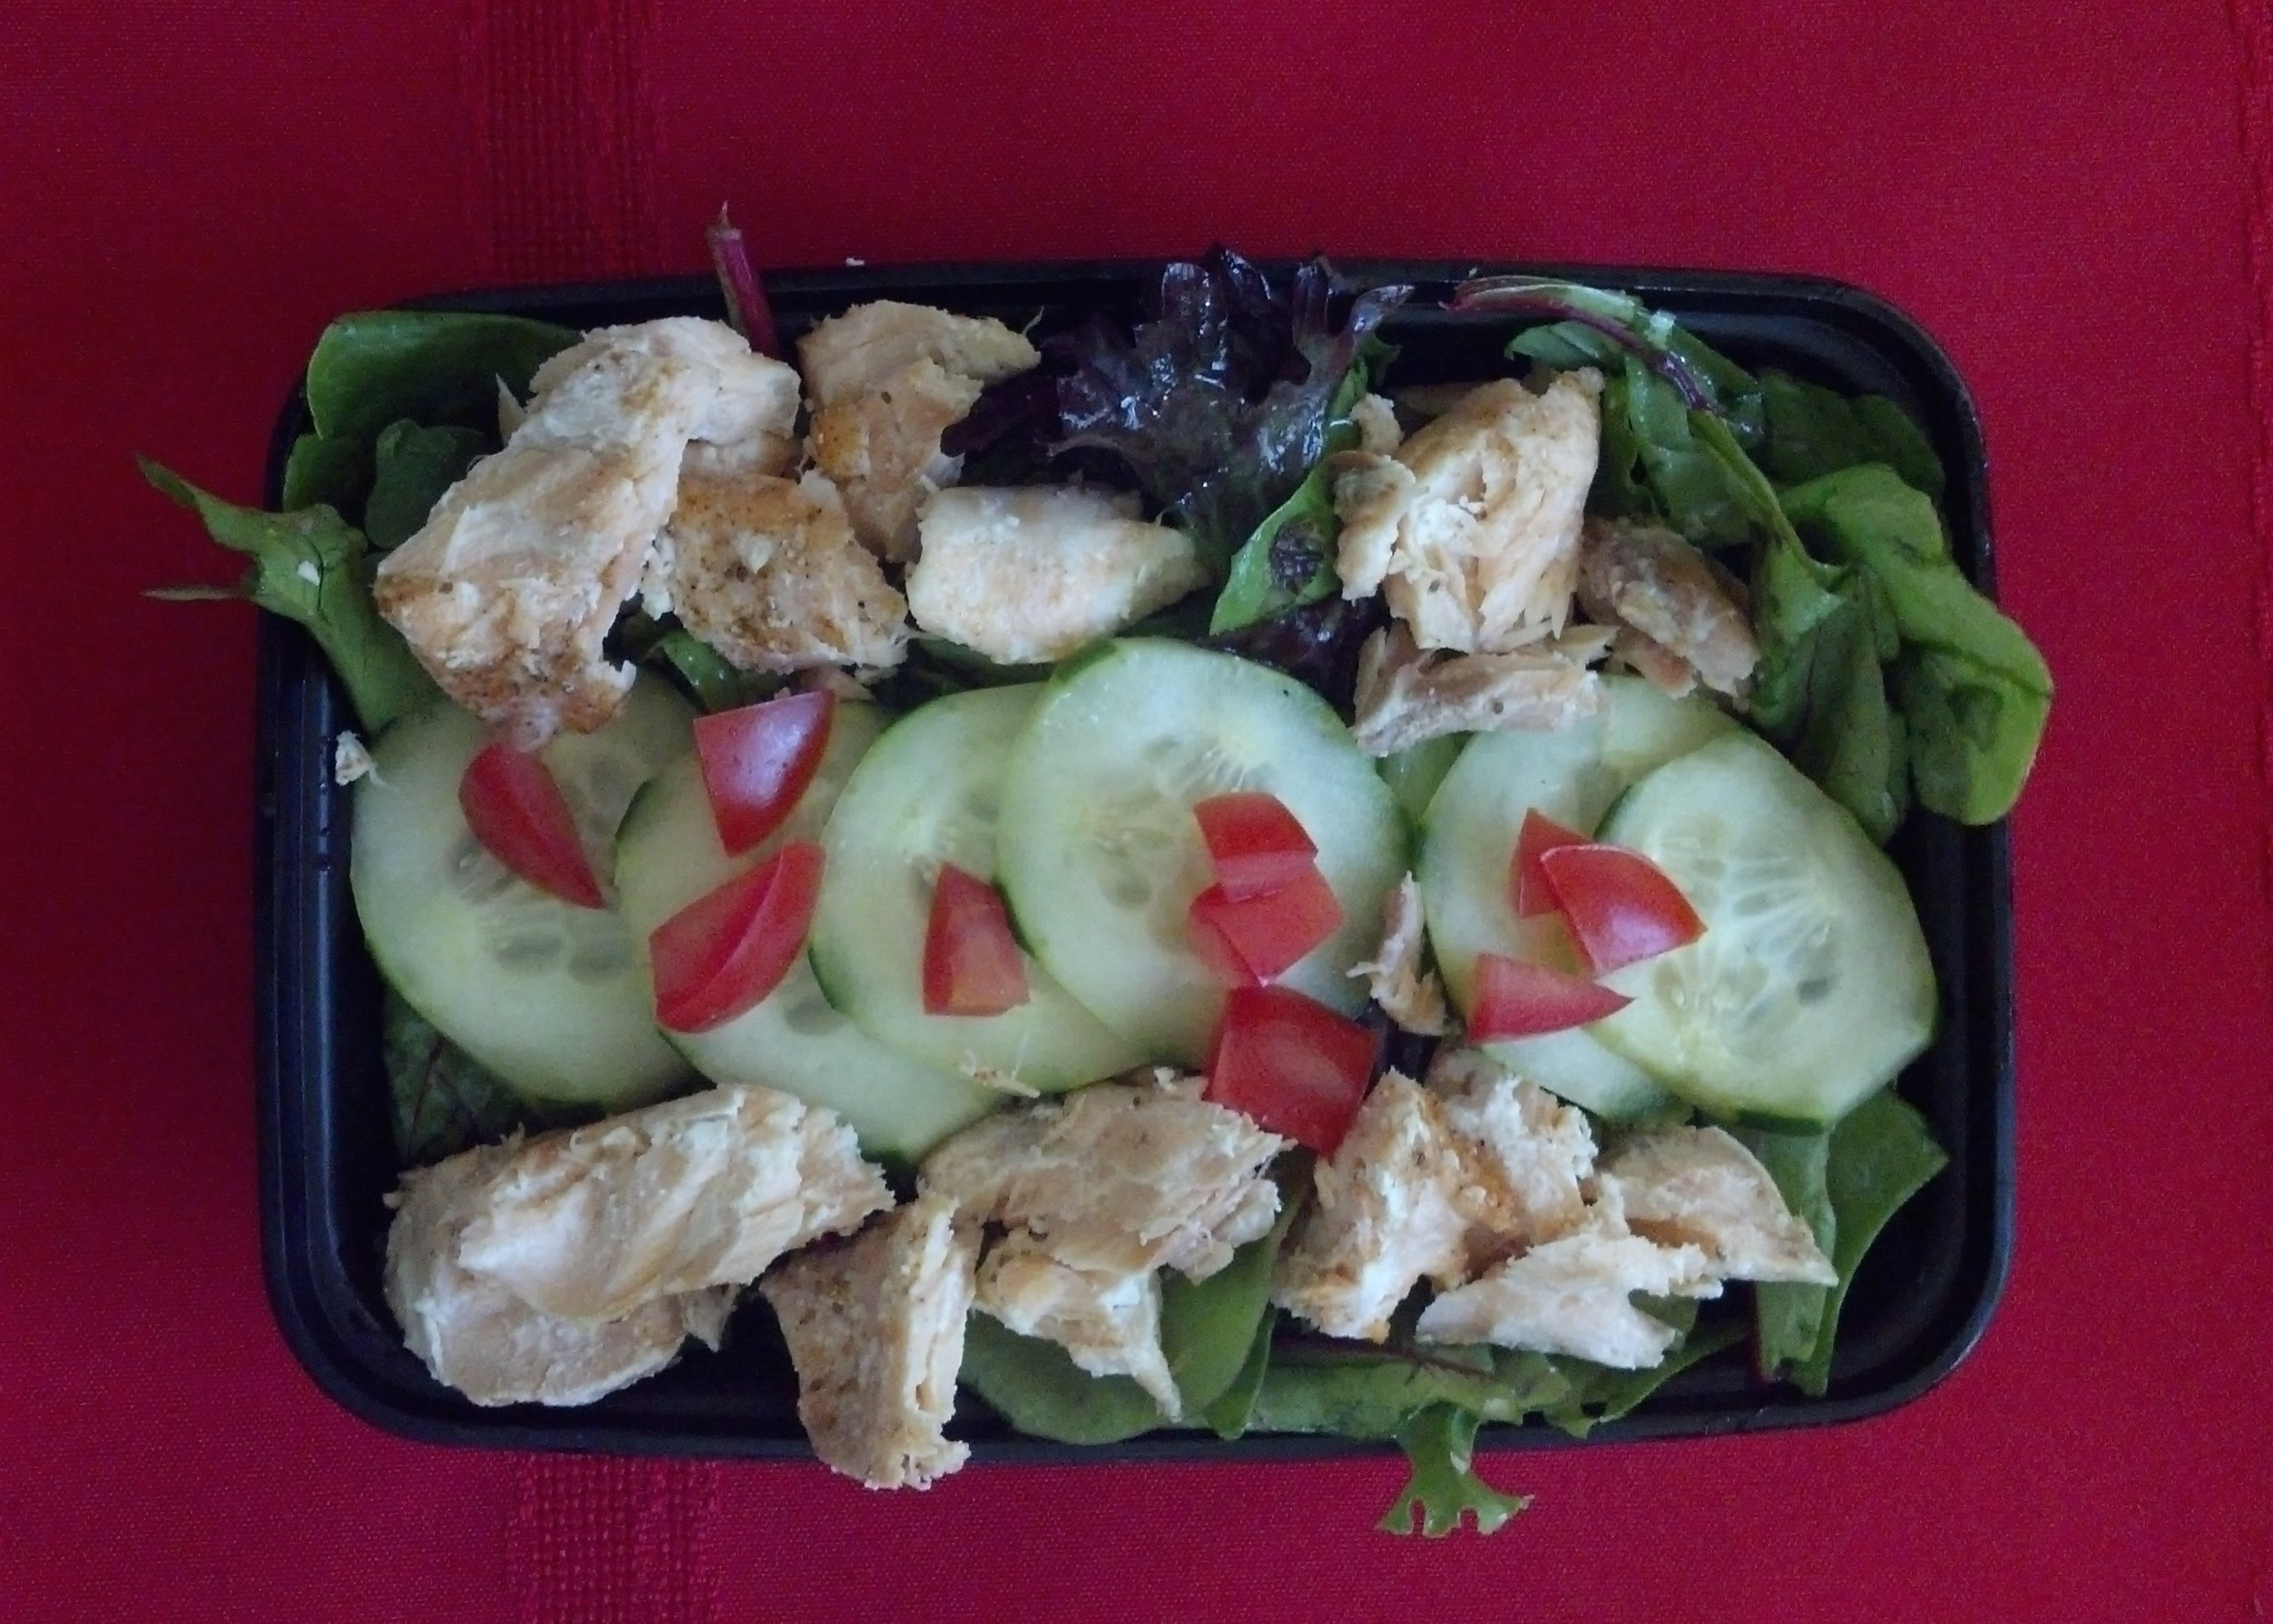 Salmon Salad - box lunch entree salad